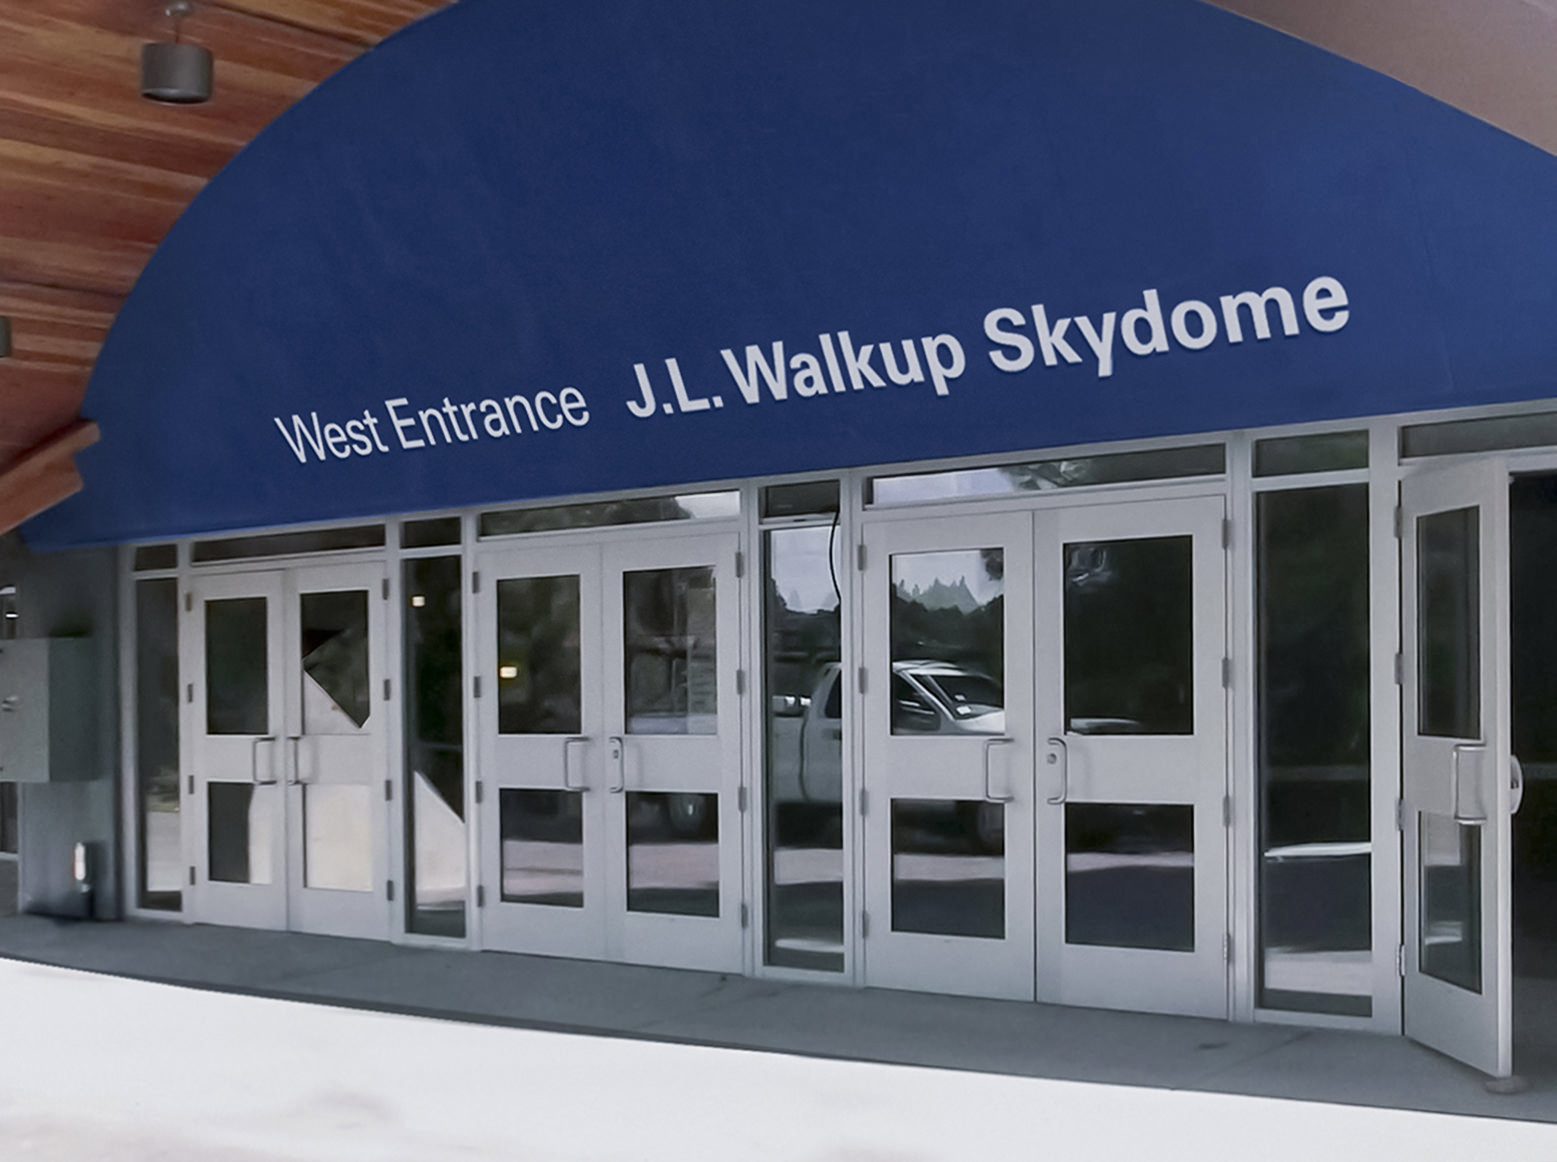 The West Entrance is identified with flat cutout lettering.